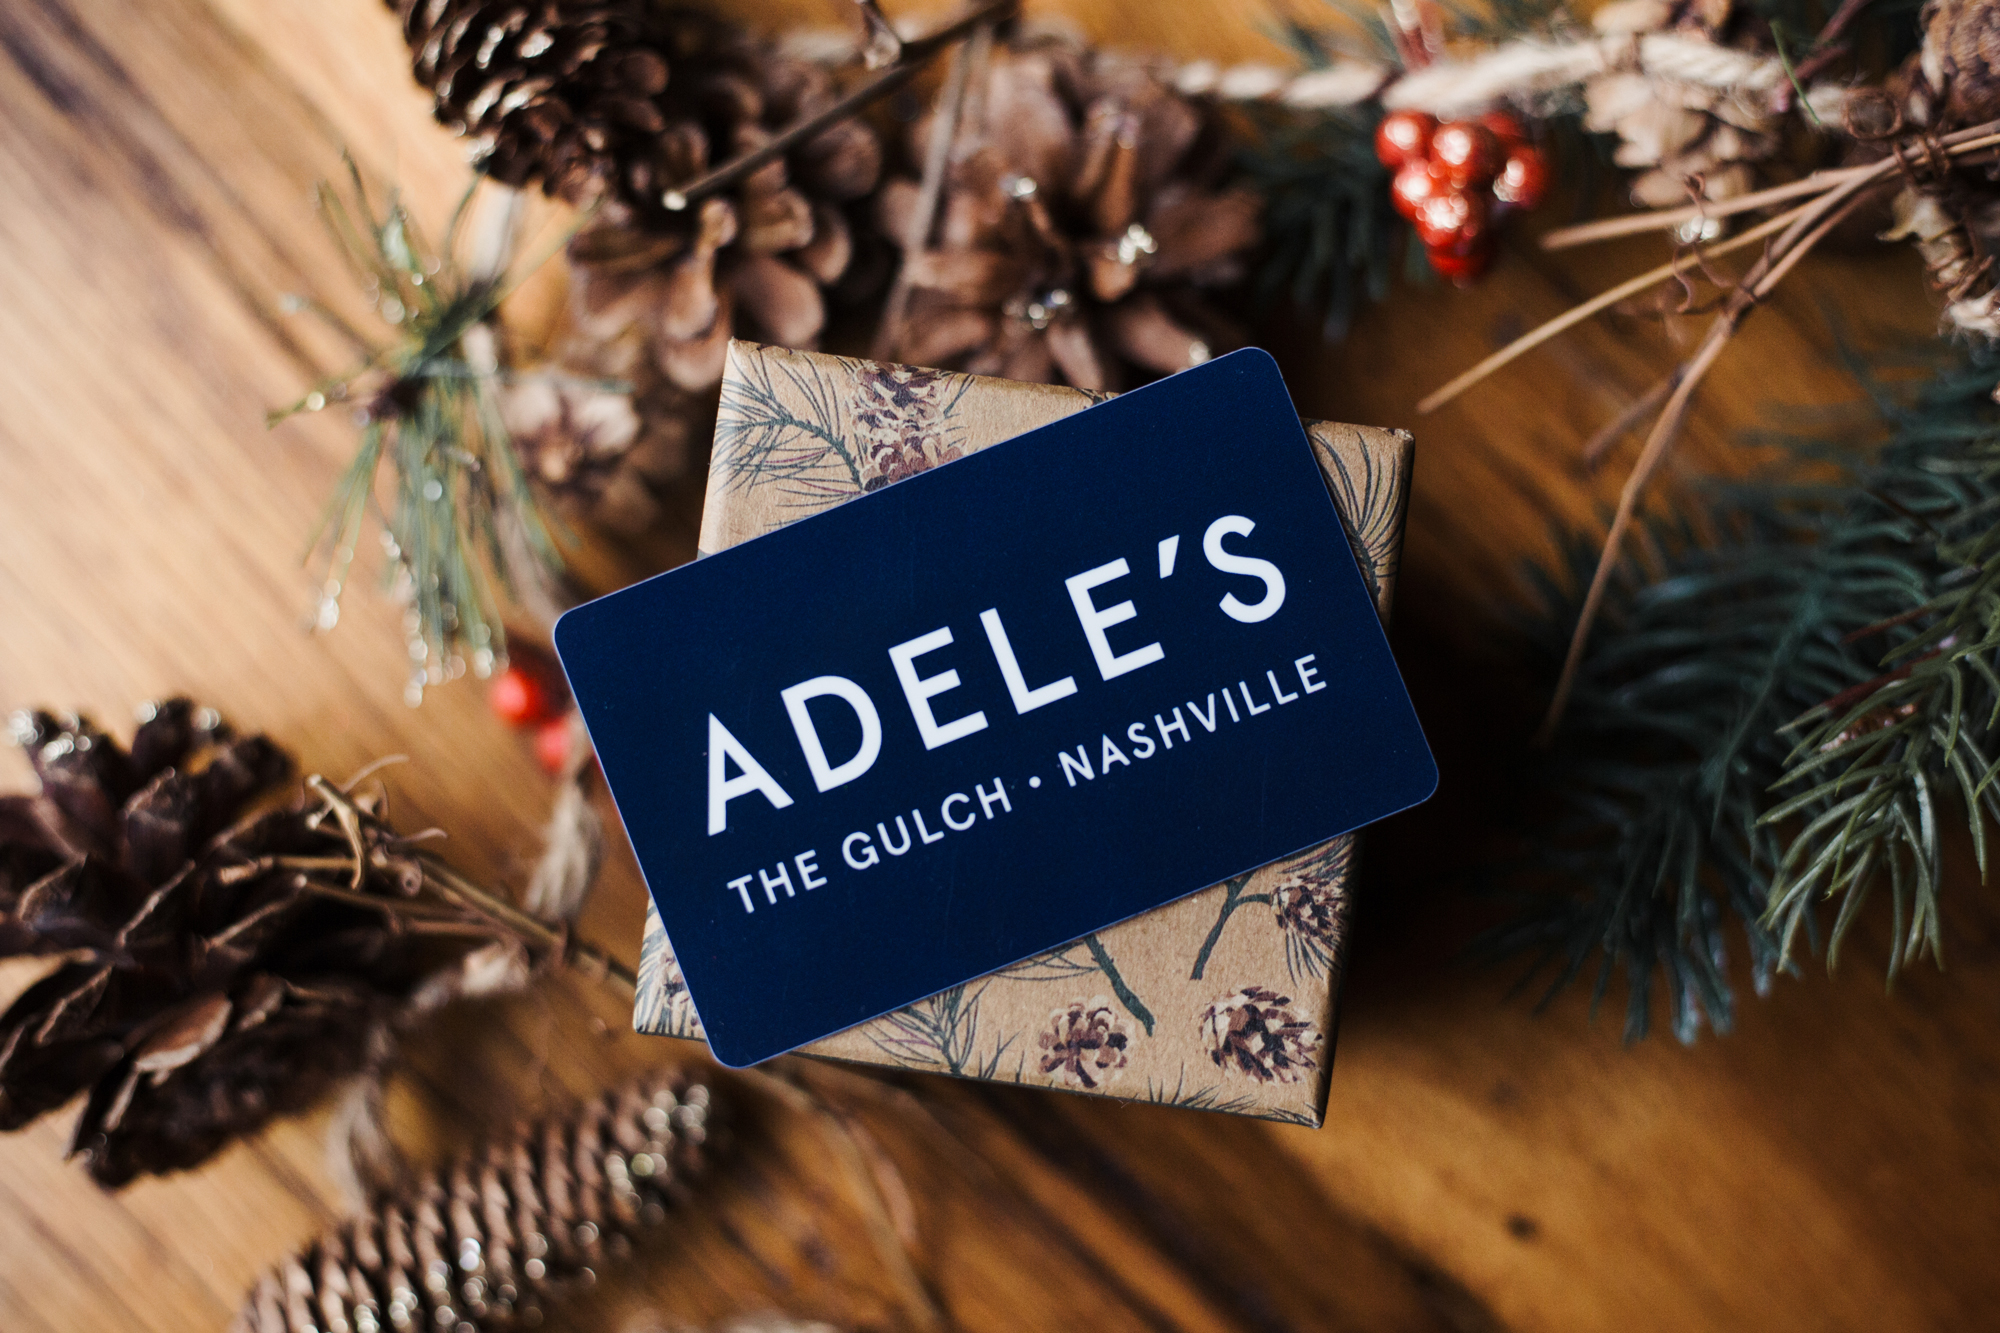 Adele's Gift Cards in a gift box